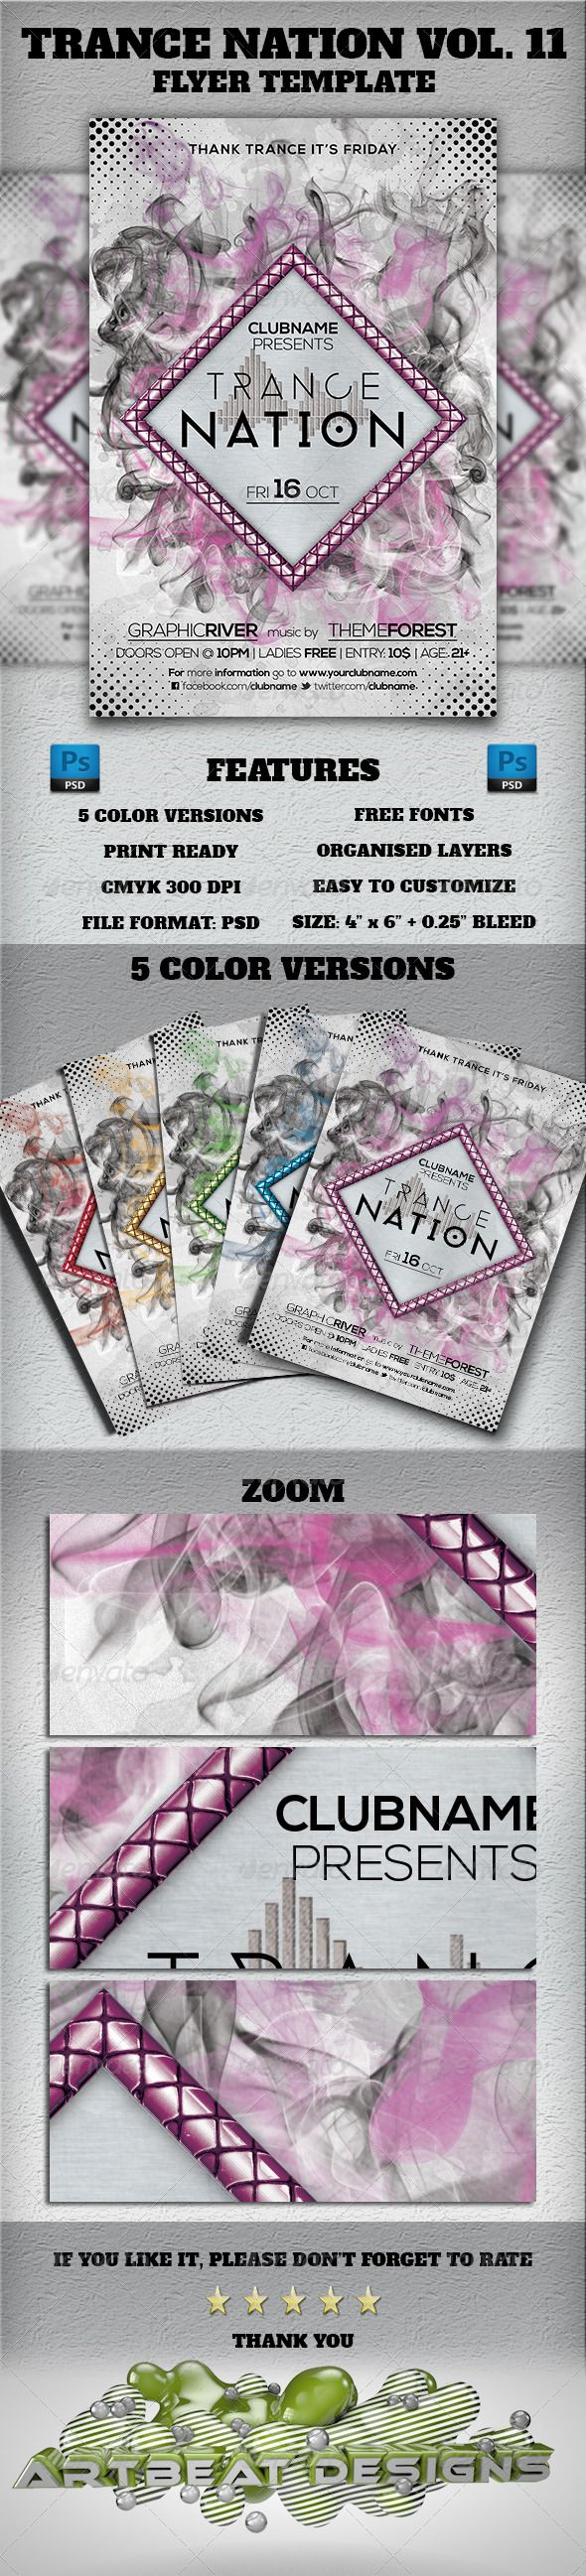 Trance Nation Vol. 11 Flyer Template